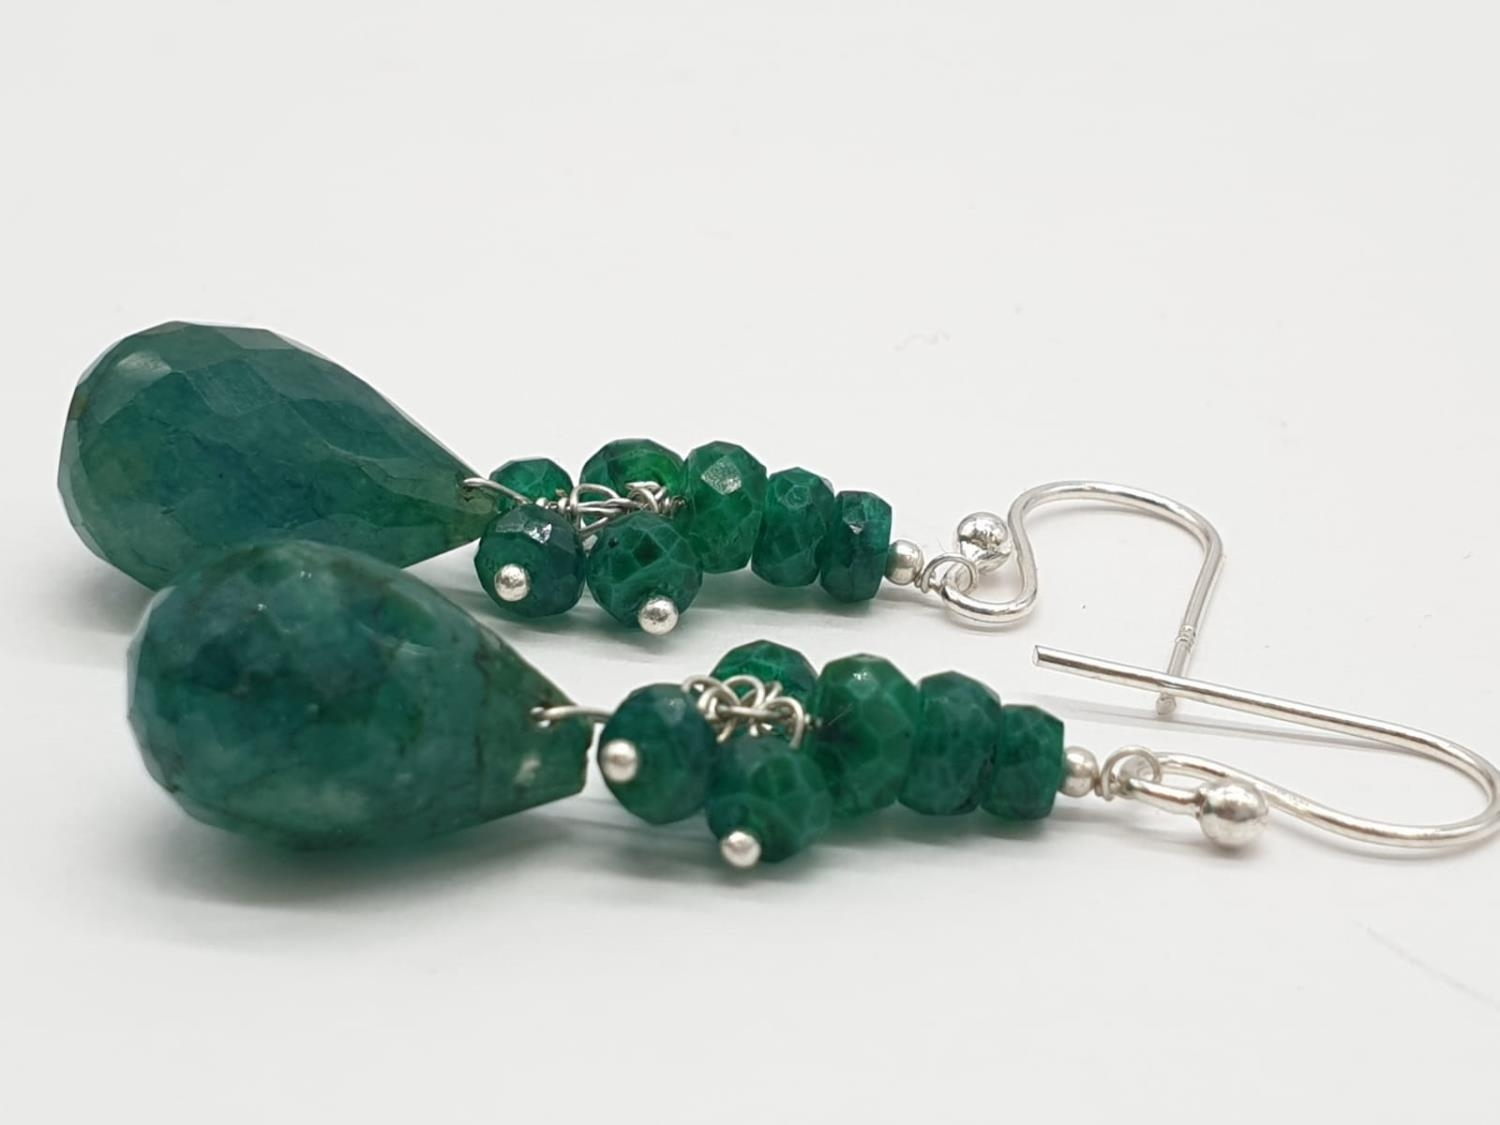 A Emerald Drops Necklace With Matching Dangler Earrings - Image 3 of 4